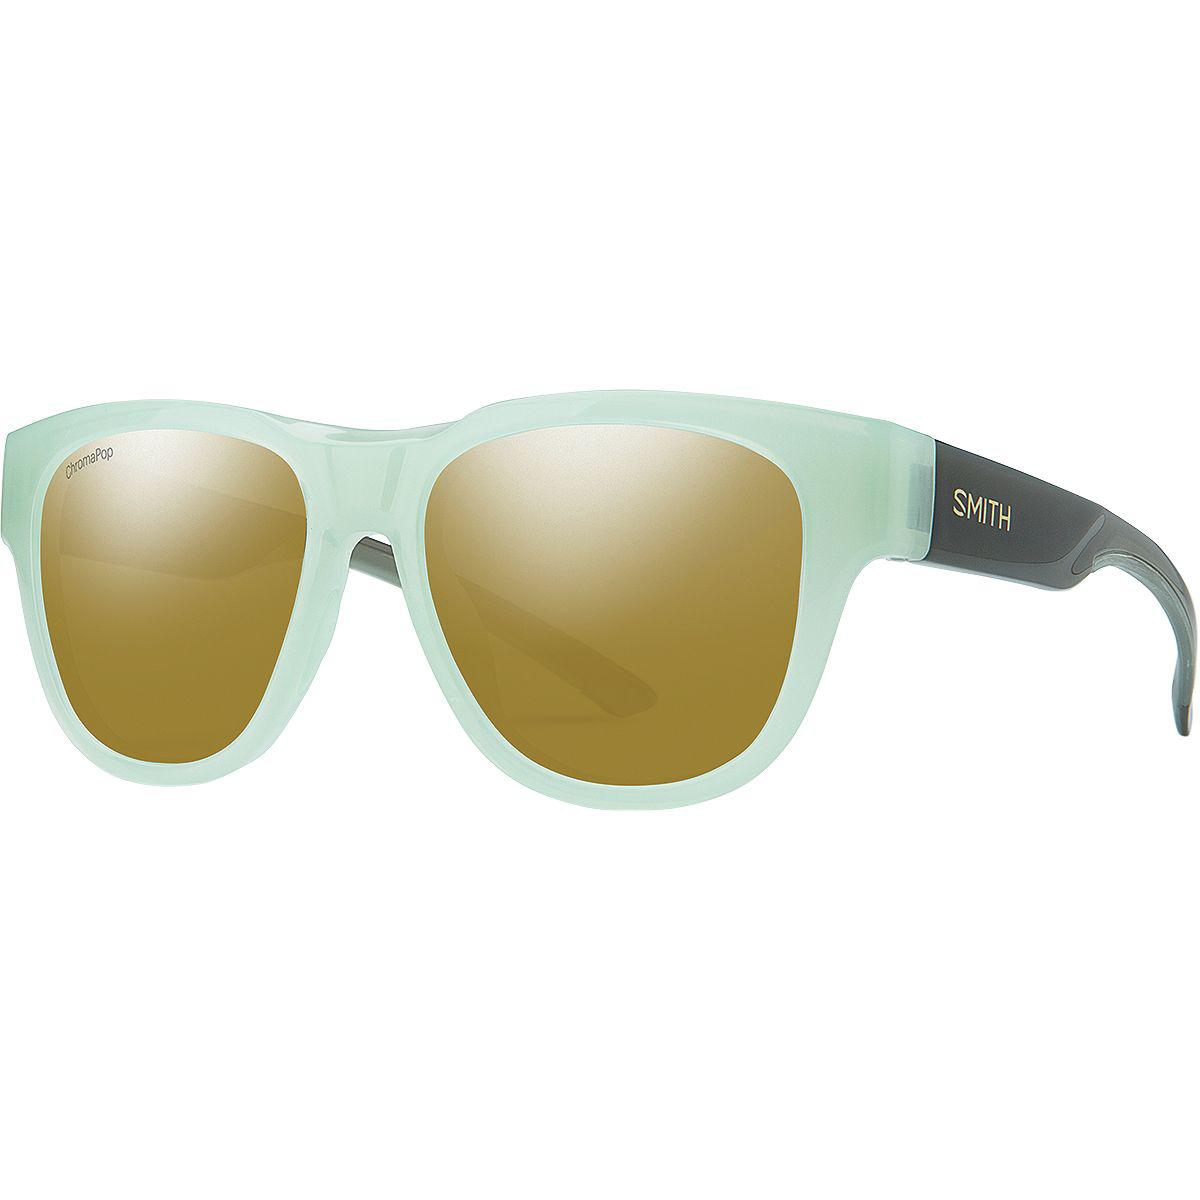 b25536253e ... Chromapop Polarized Sunglasses for Men - Lyst. View fullscreen